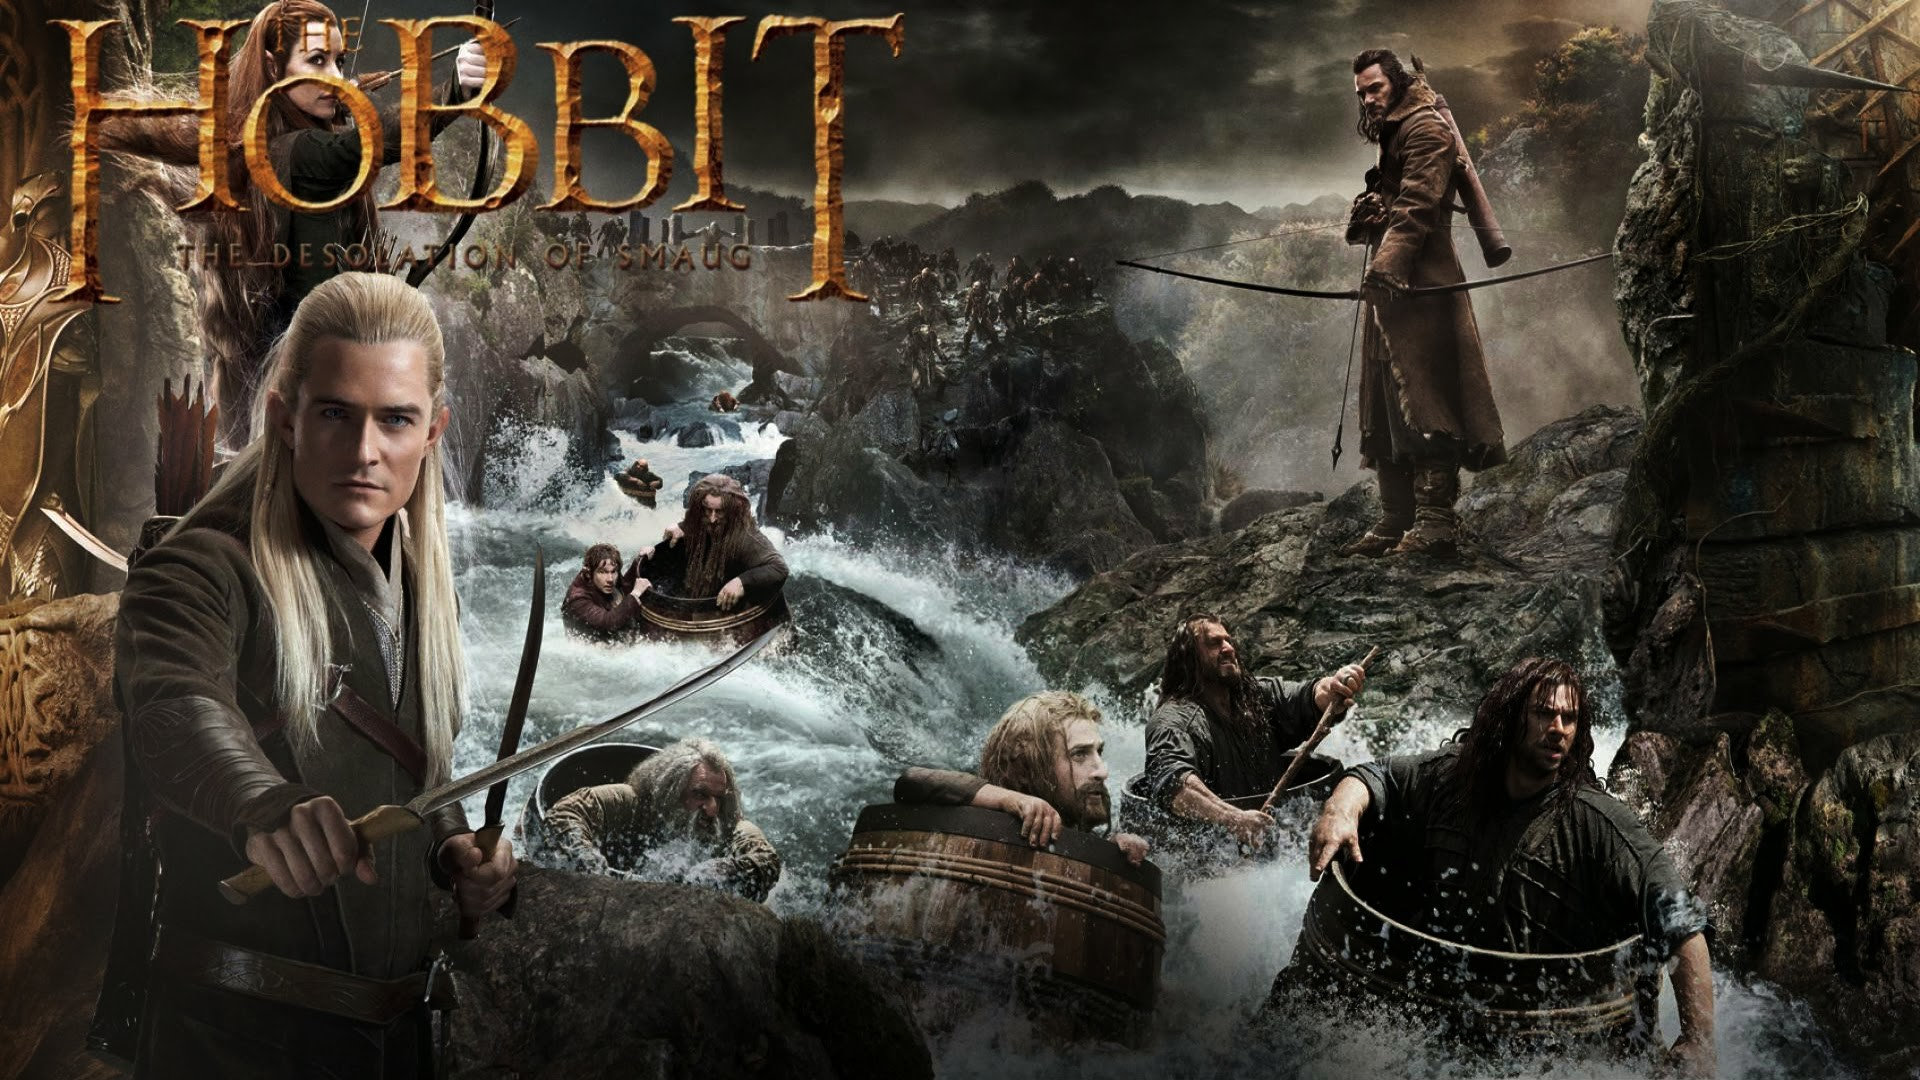 1920x1200 The Hobbit Desolation Of Smaug Wallpapers Hd Backgrounds1